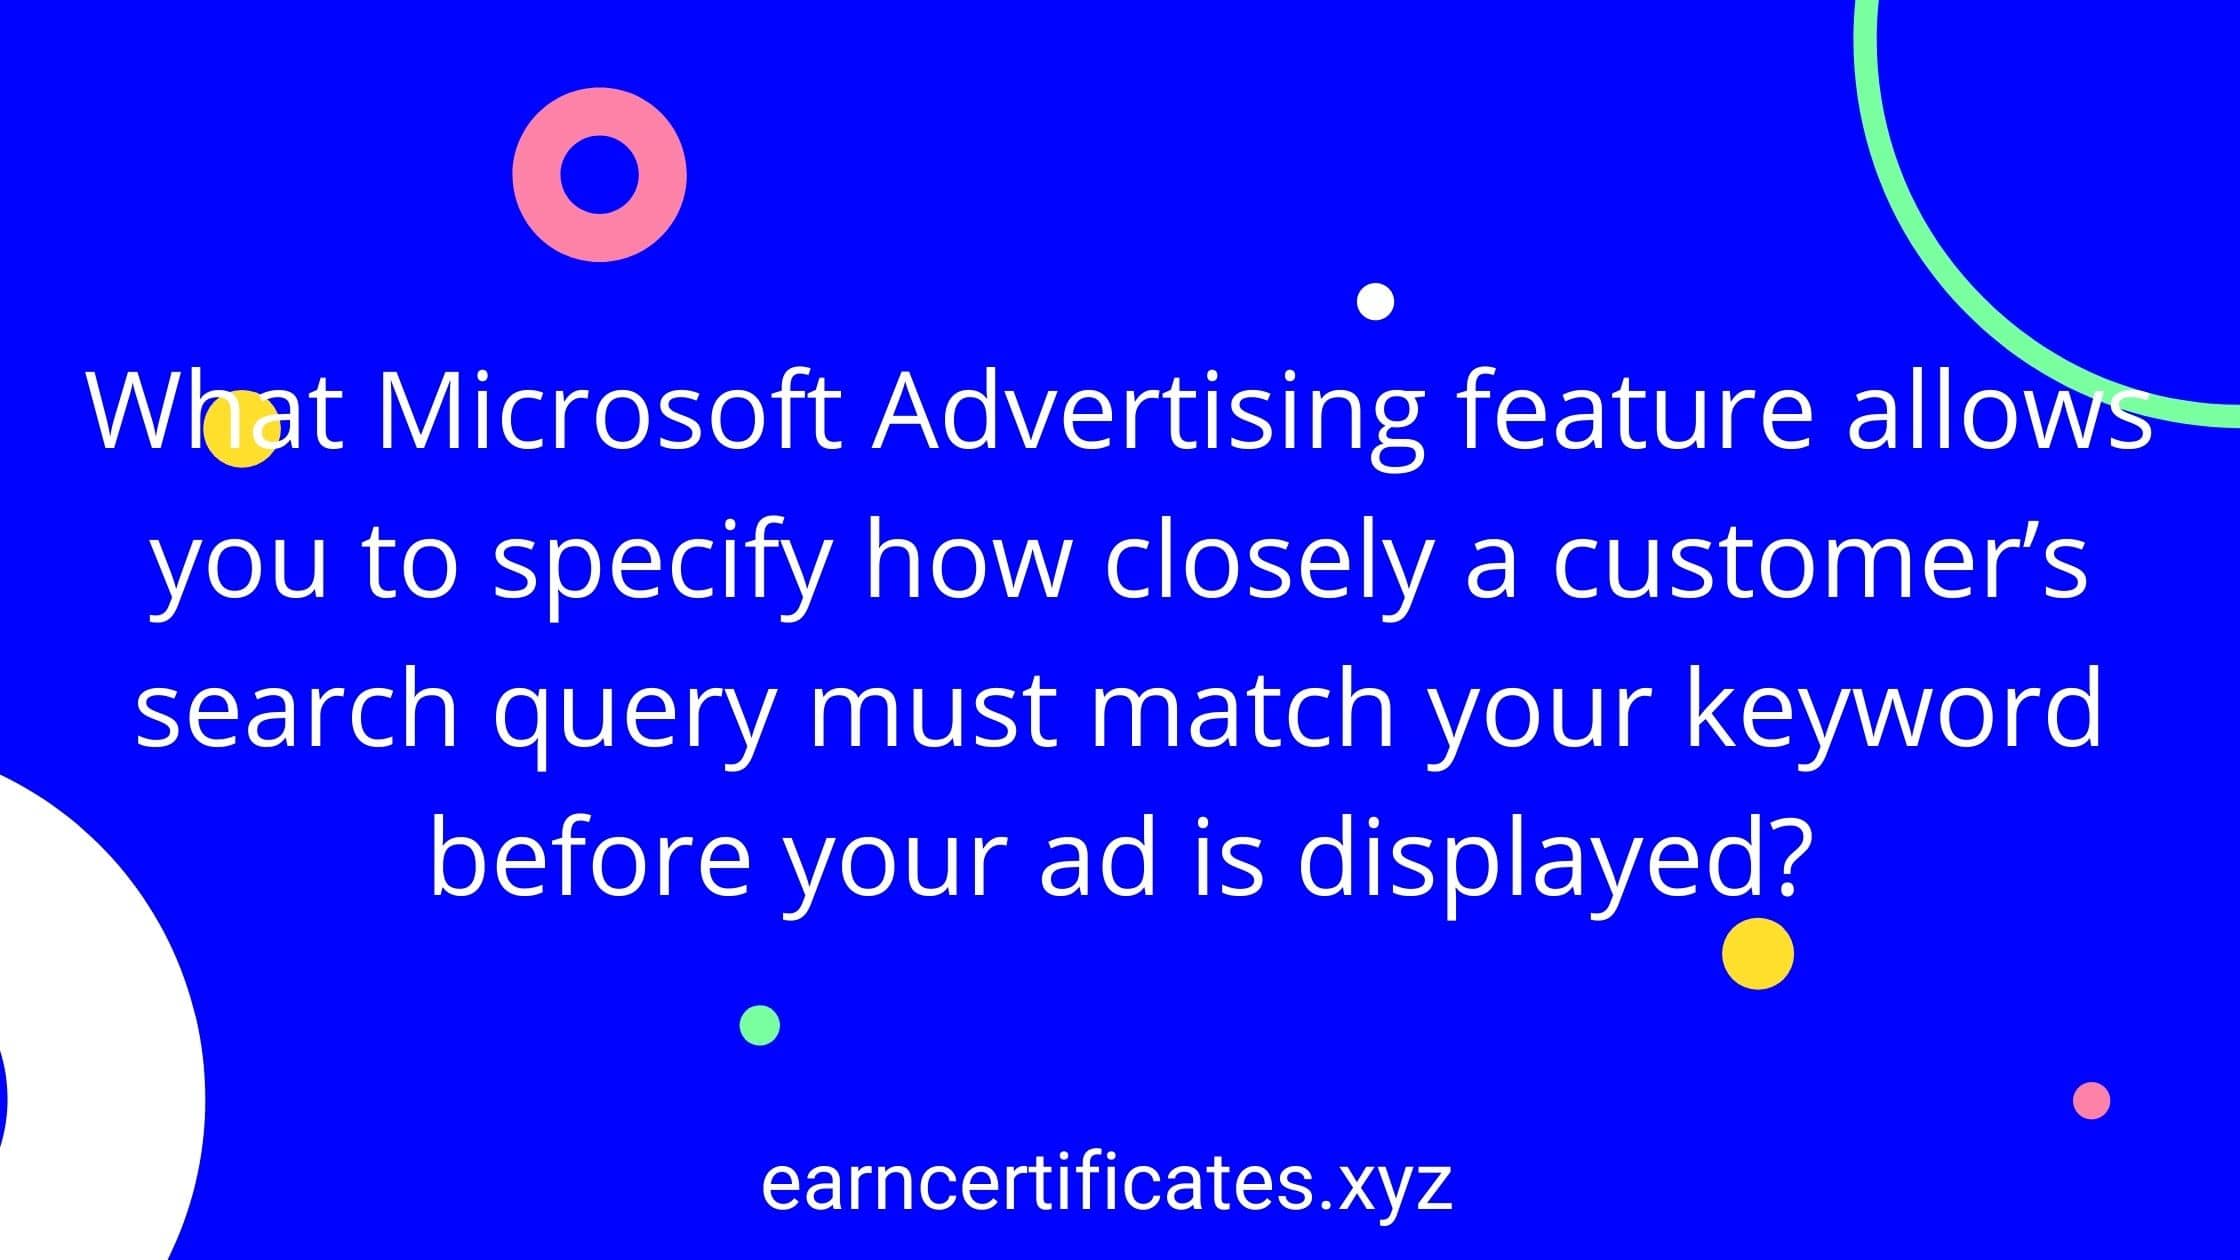 What Microsoft Advertising feature allows you to specify how closely a customer's search query must match your keyword before your ad is displayed?